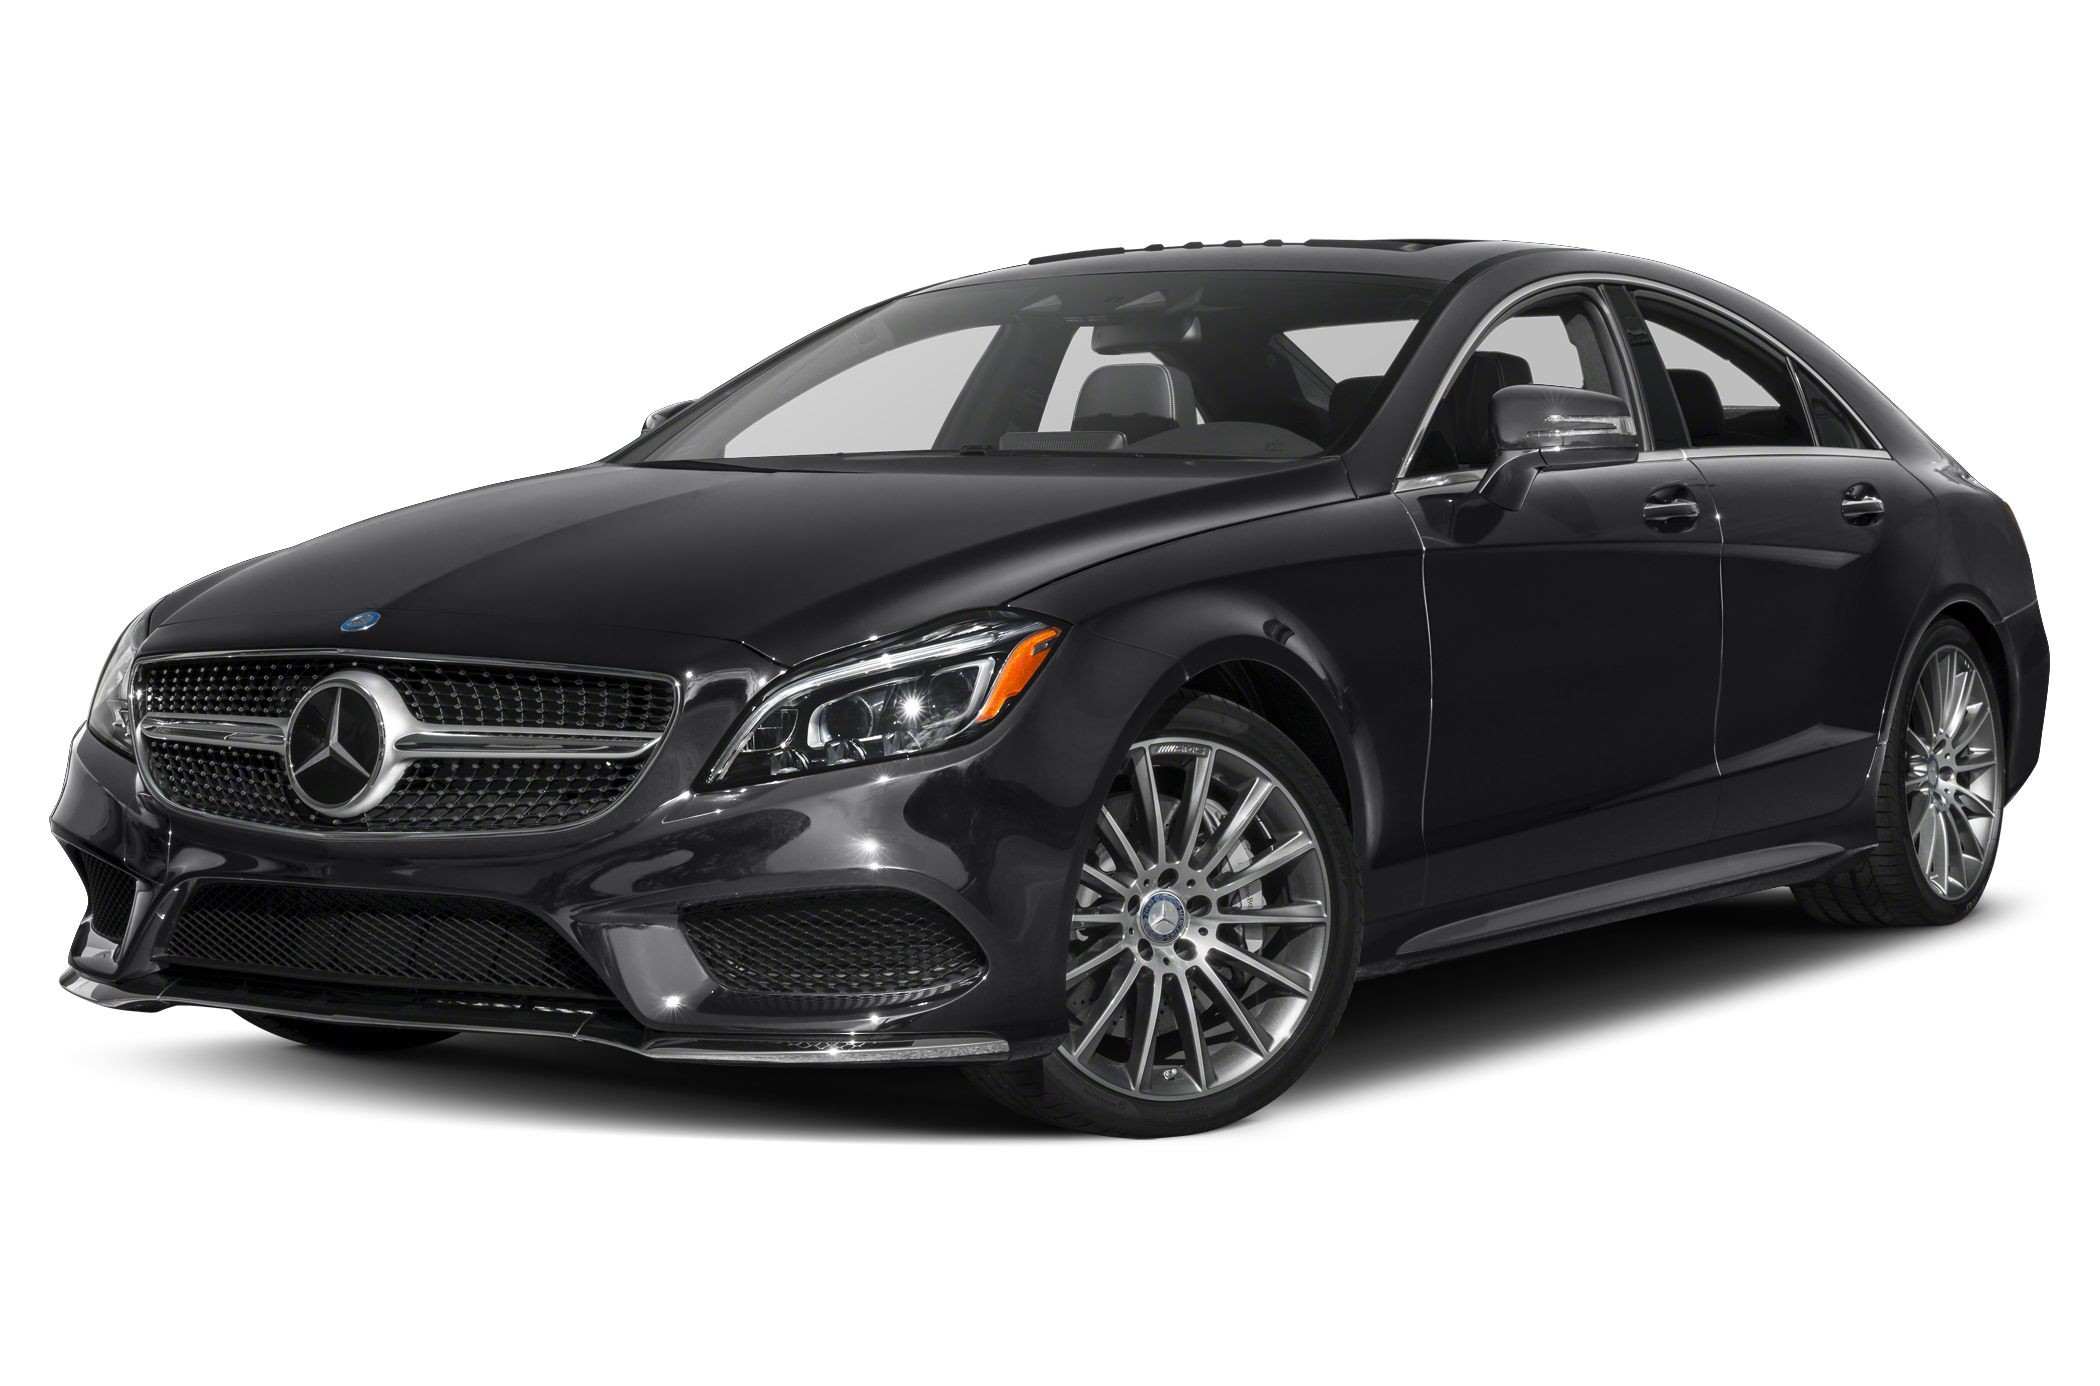 2015 mercedes benz cls class with multibeam led headlights photo gallery autoblog. Black Bedroom Furniture Sets. Home Design Ideas